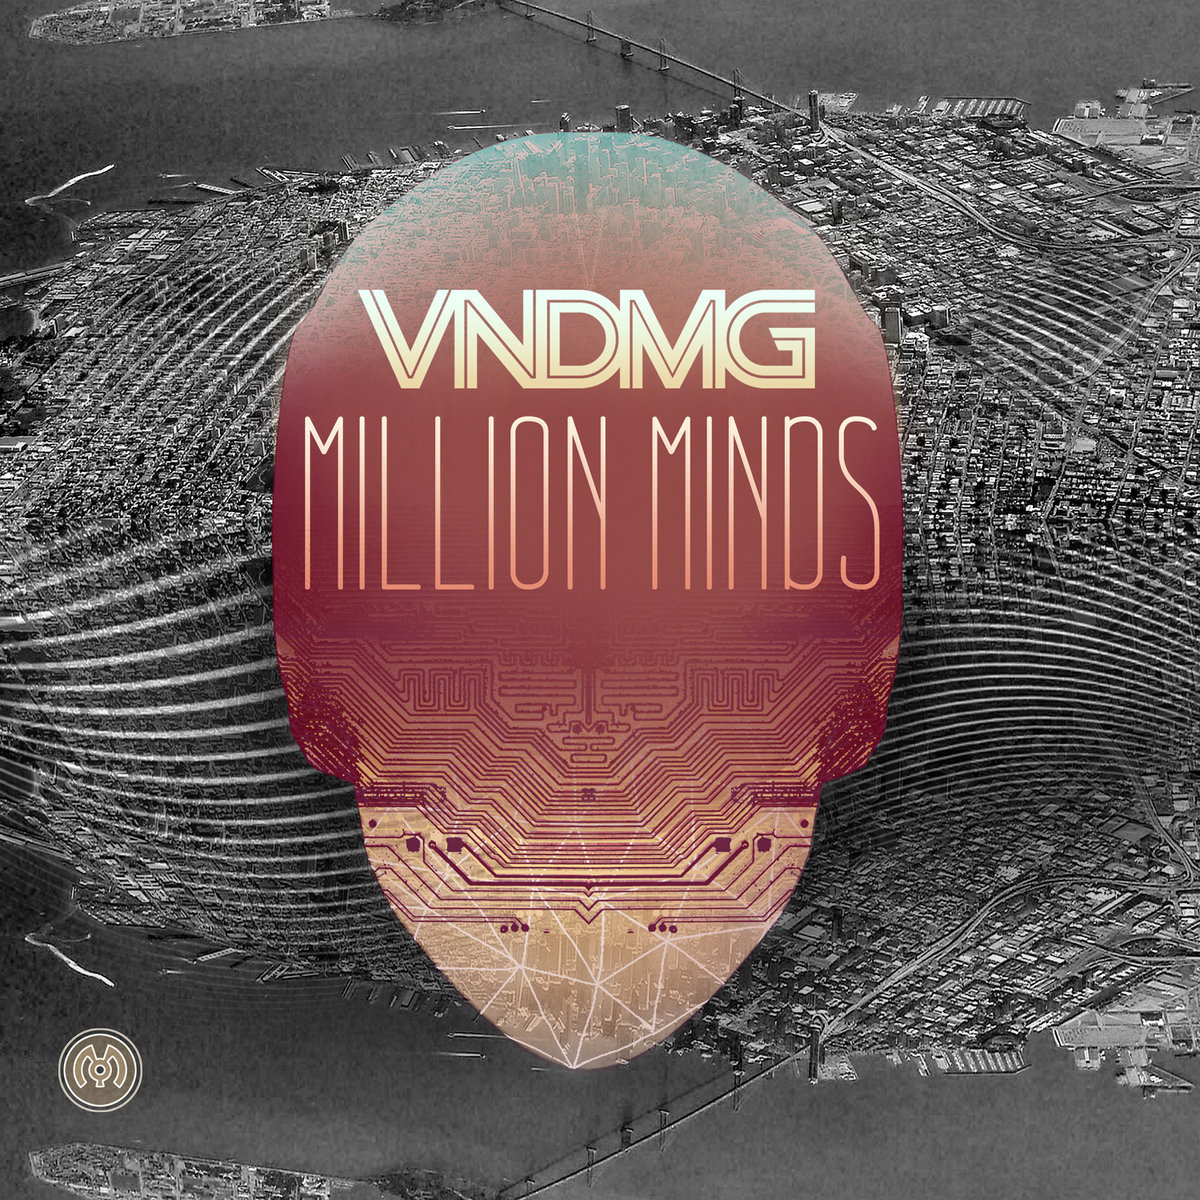 VNDMG - Bordello Blush @ 'Million Minds' album (electronic, dubstep)